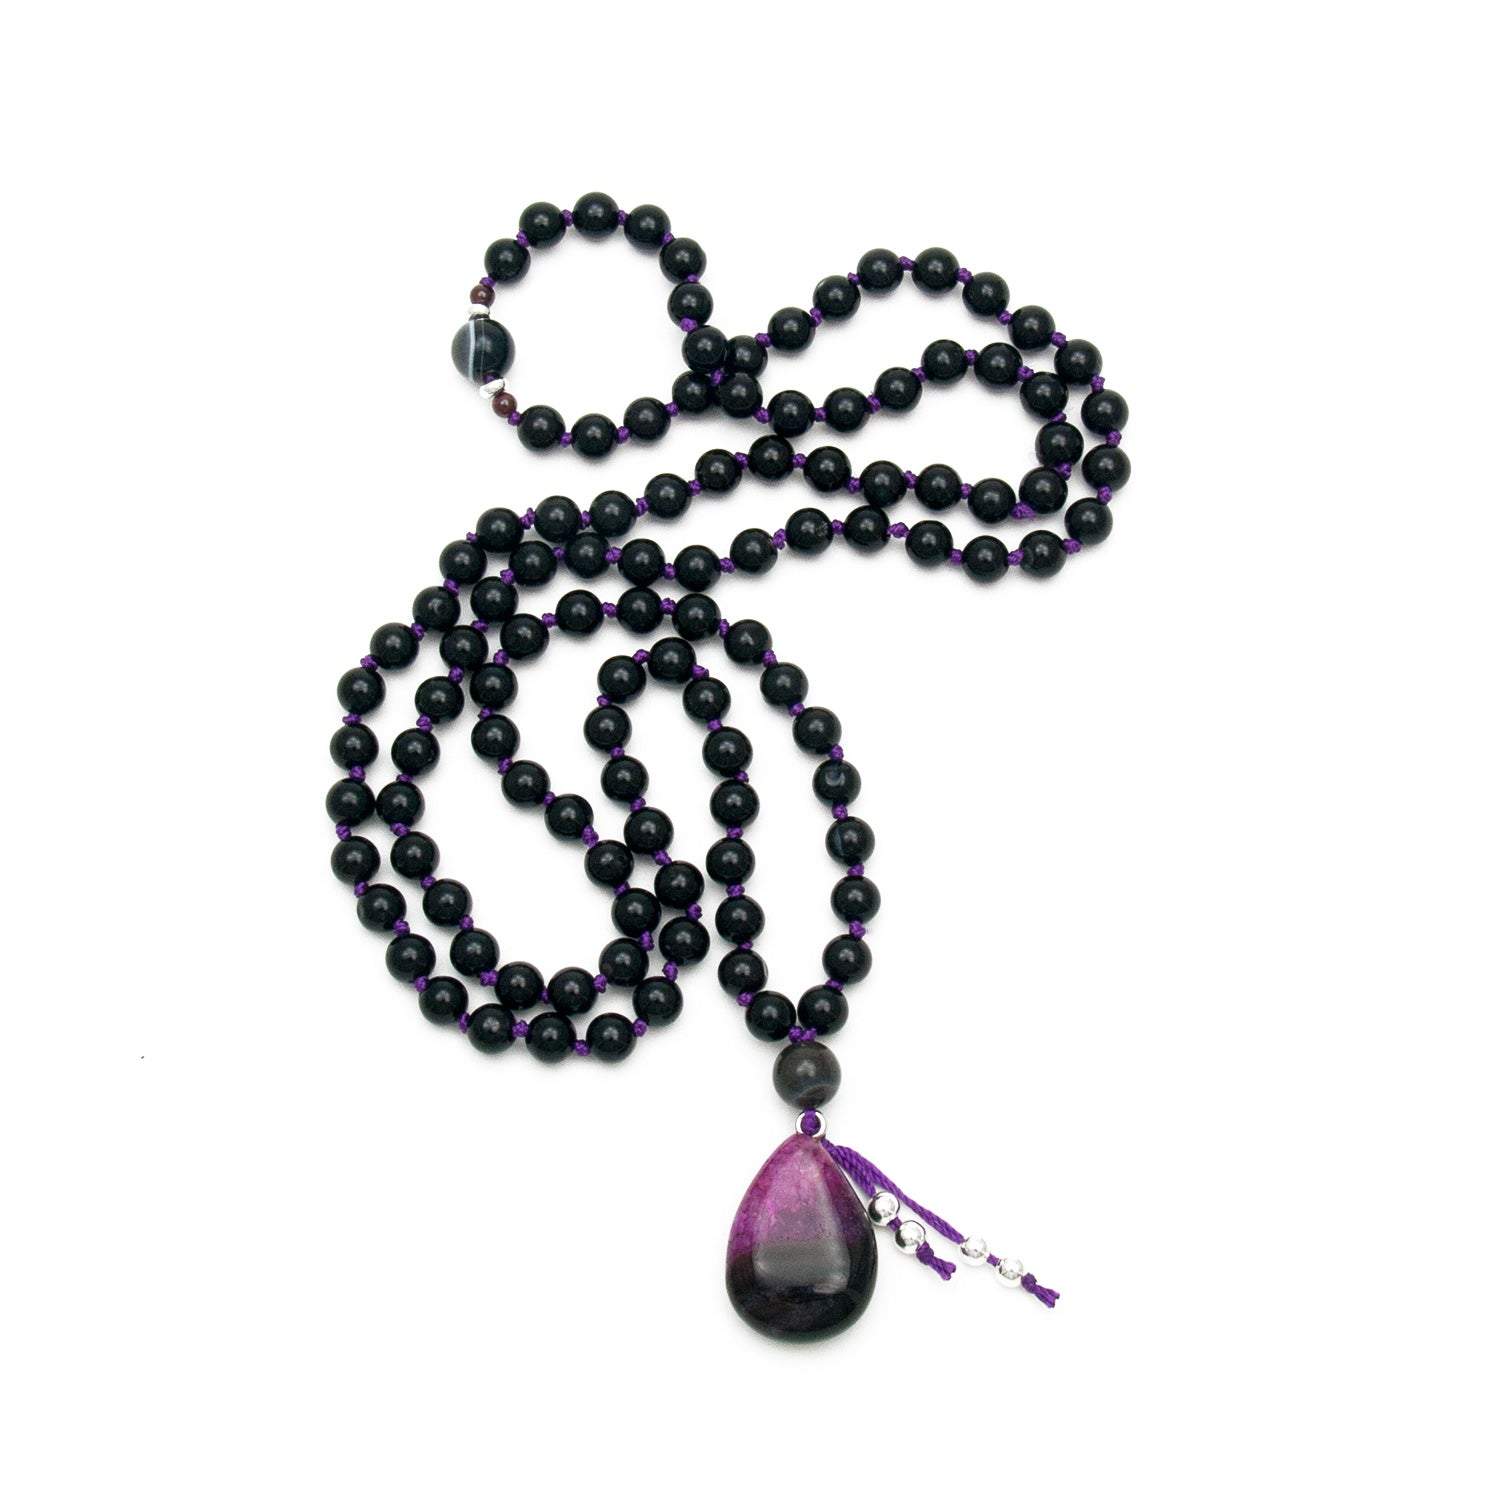 Black Onyx & Purple Agate Mala Beads by Golden Lotus Mala